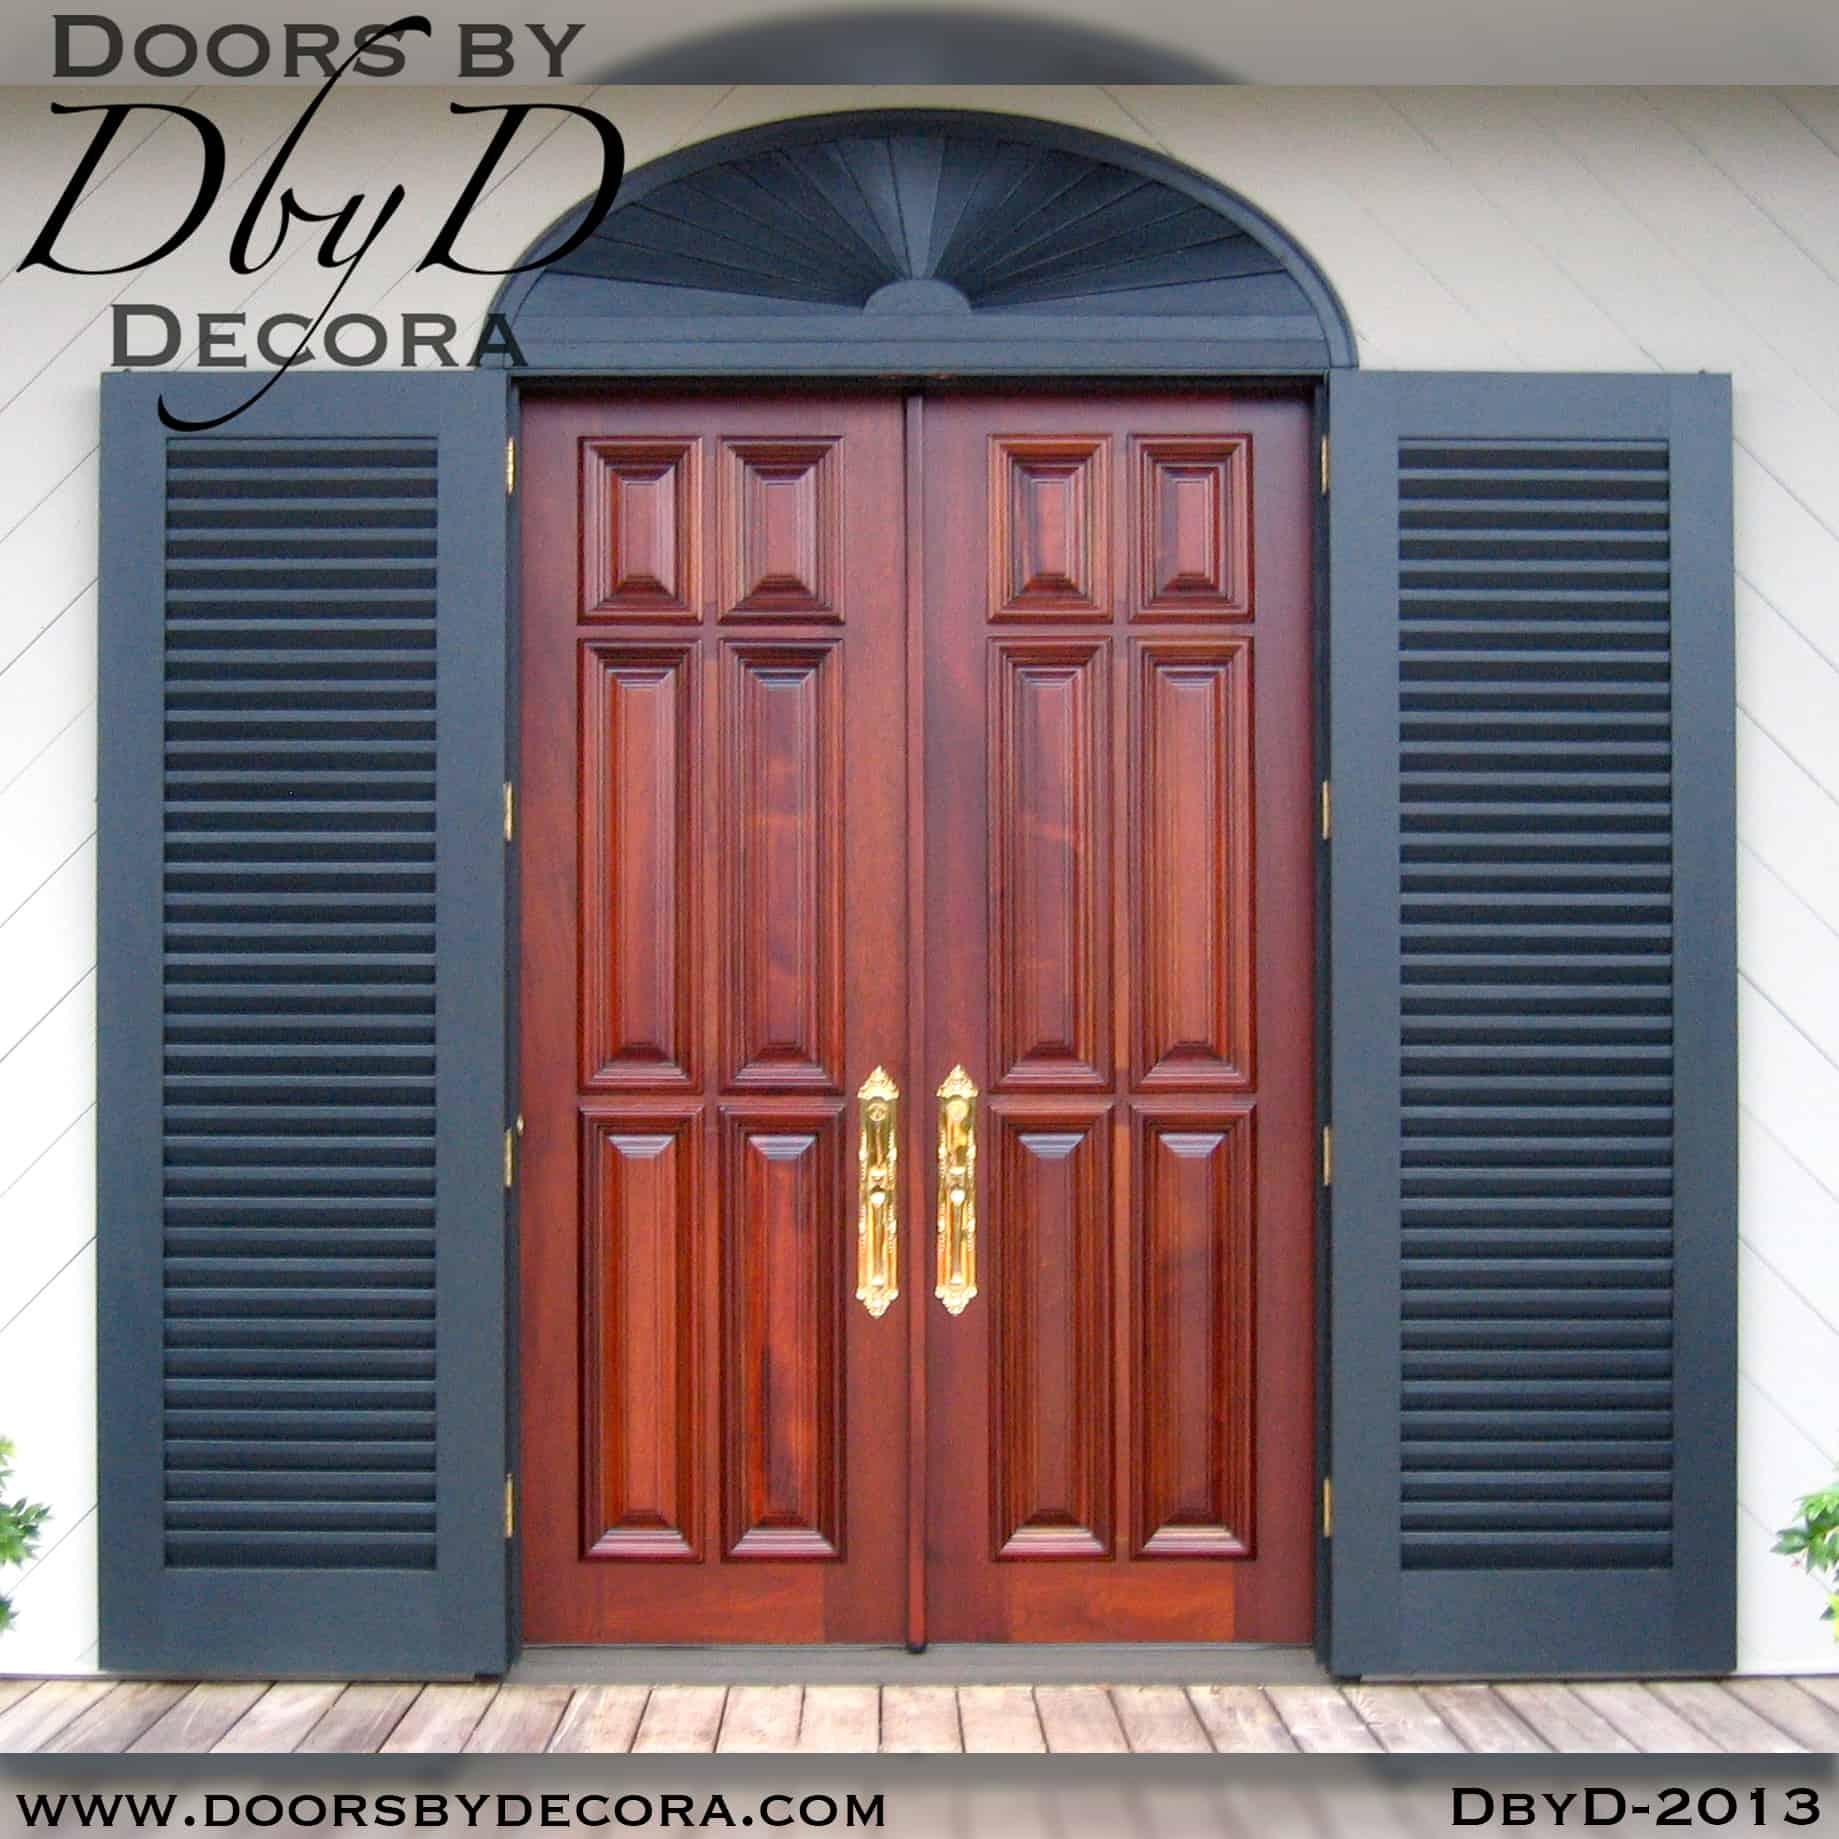 Custom Double Front Doors Made From Solid Wood Doors By Decora